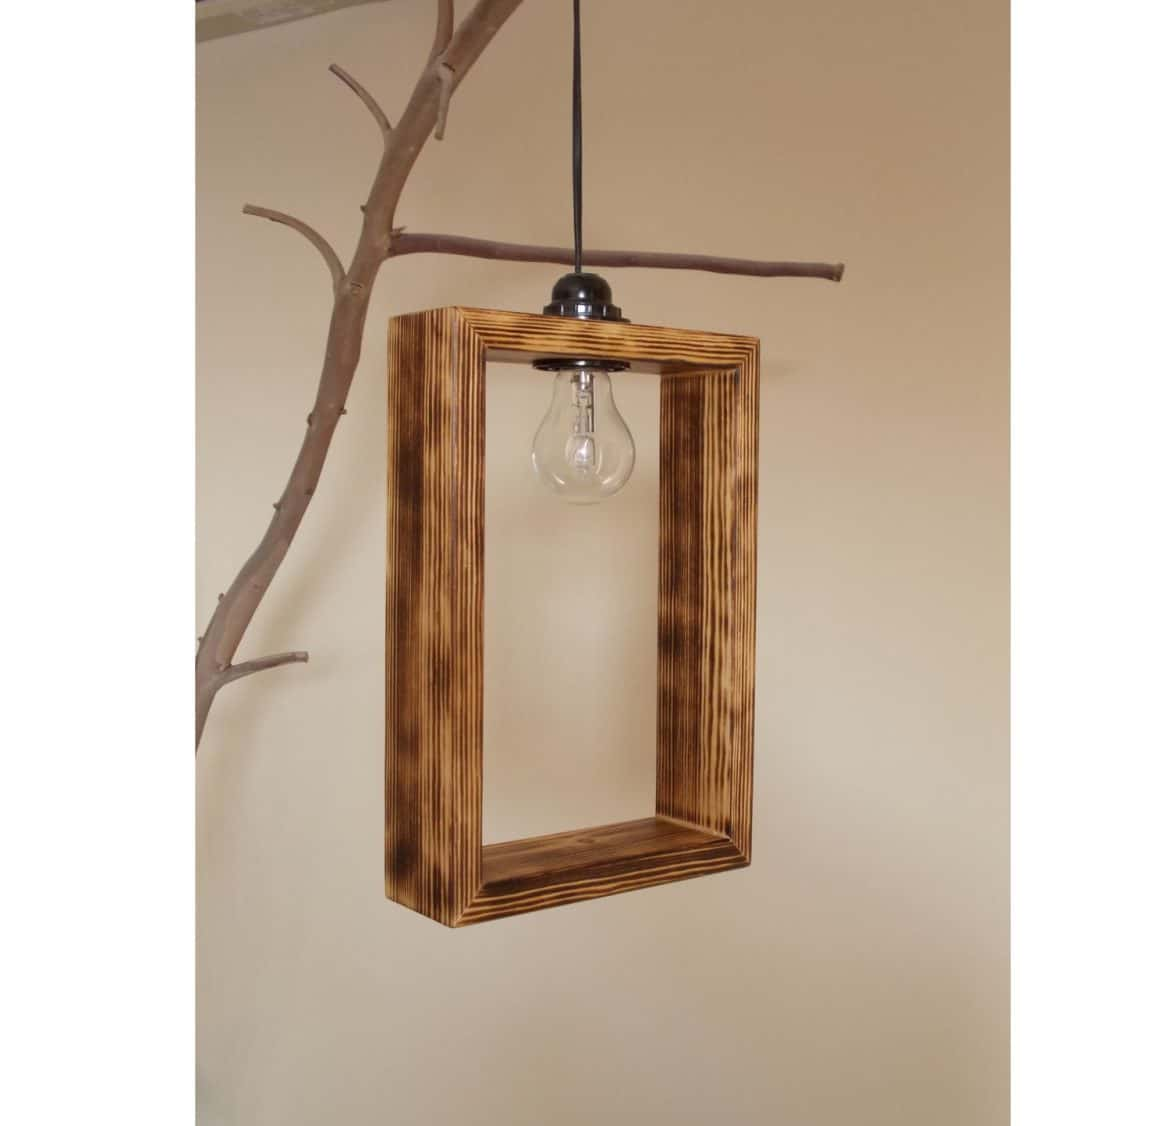 Cute Minimal Wooden Pendant Lighting Shade